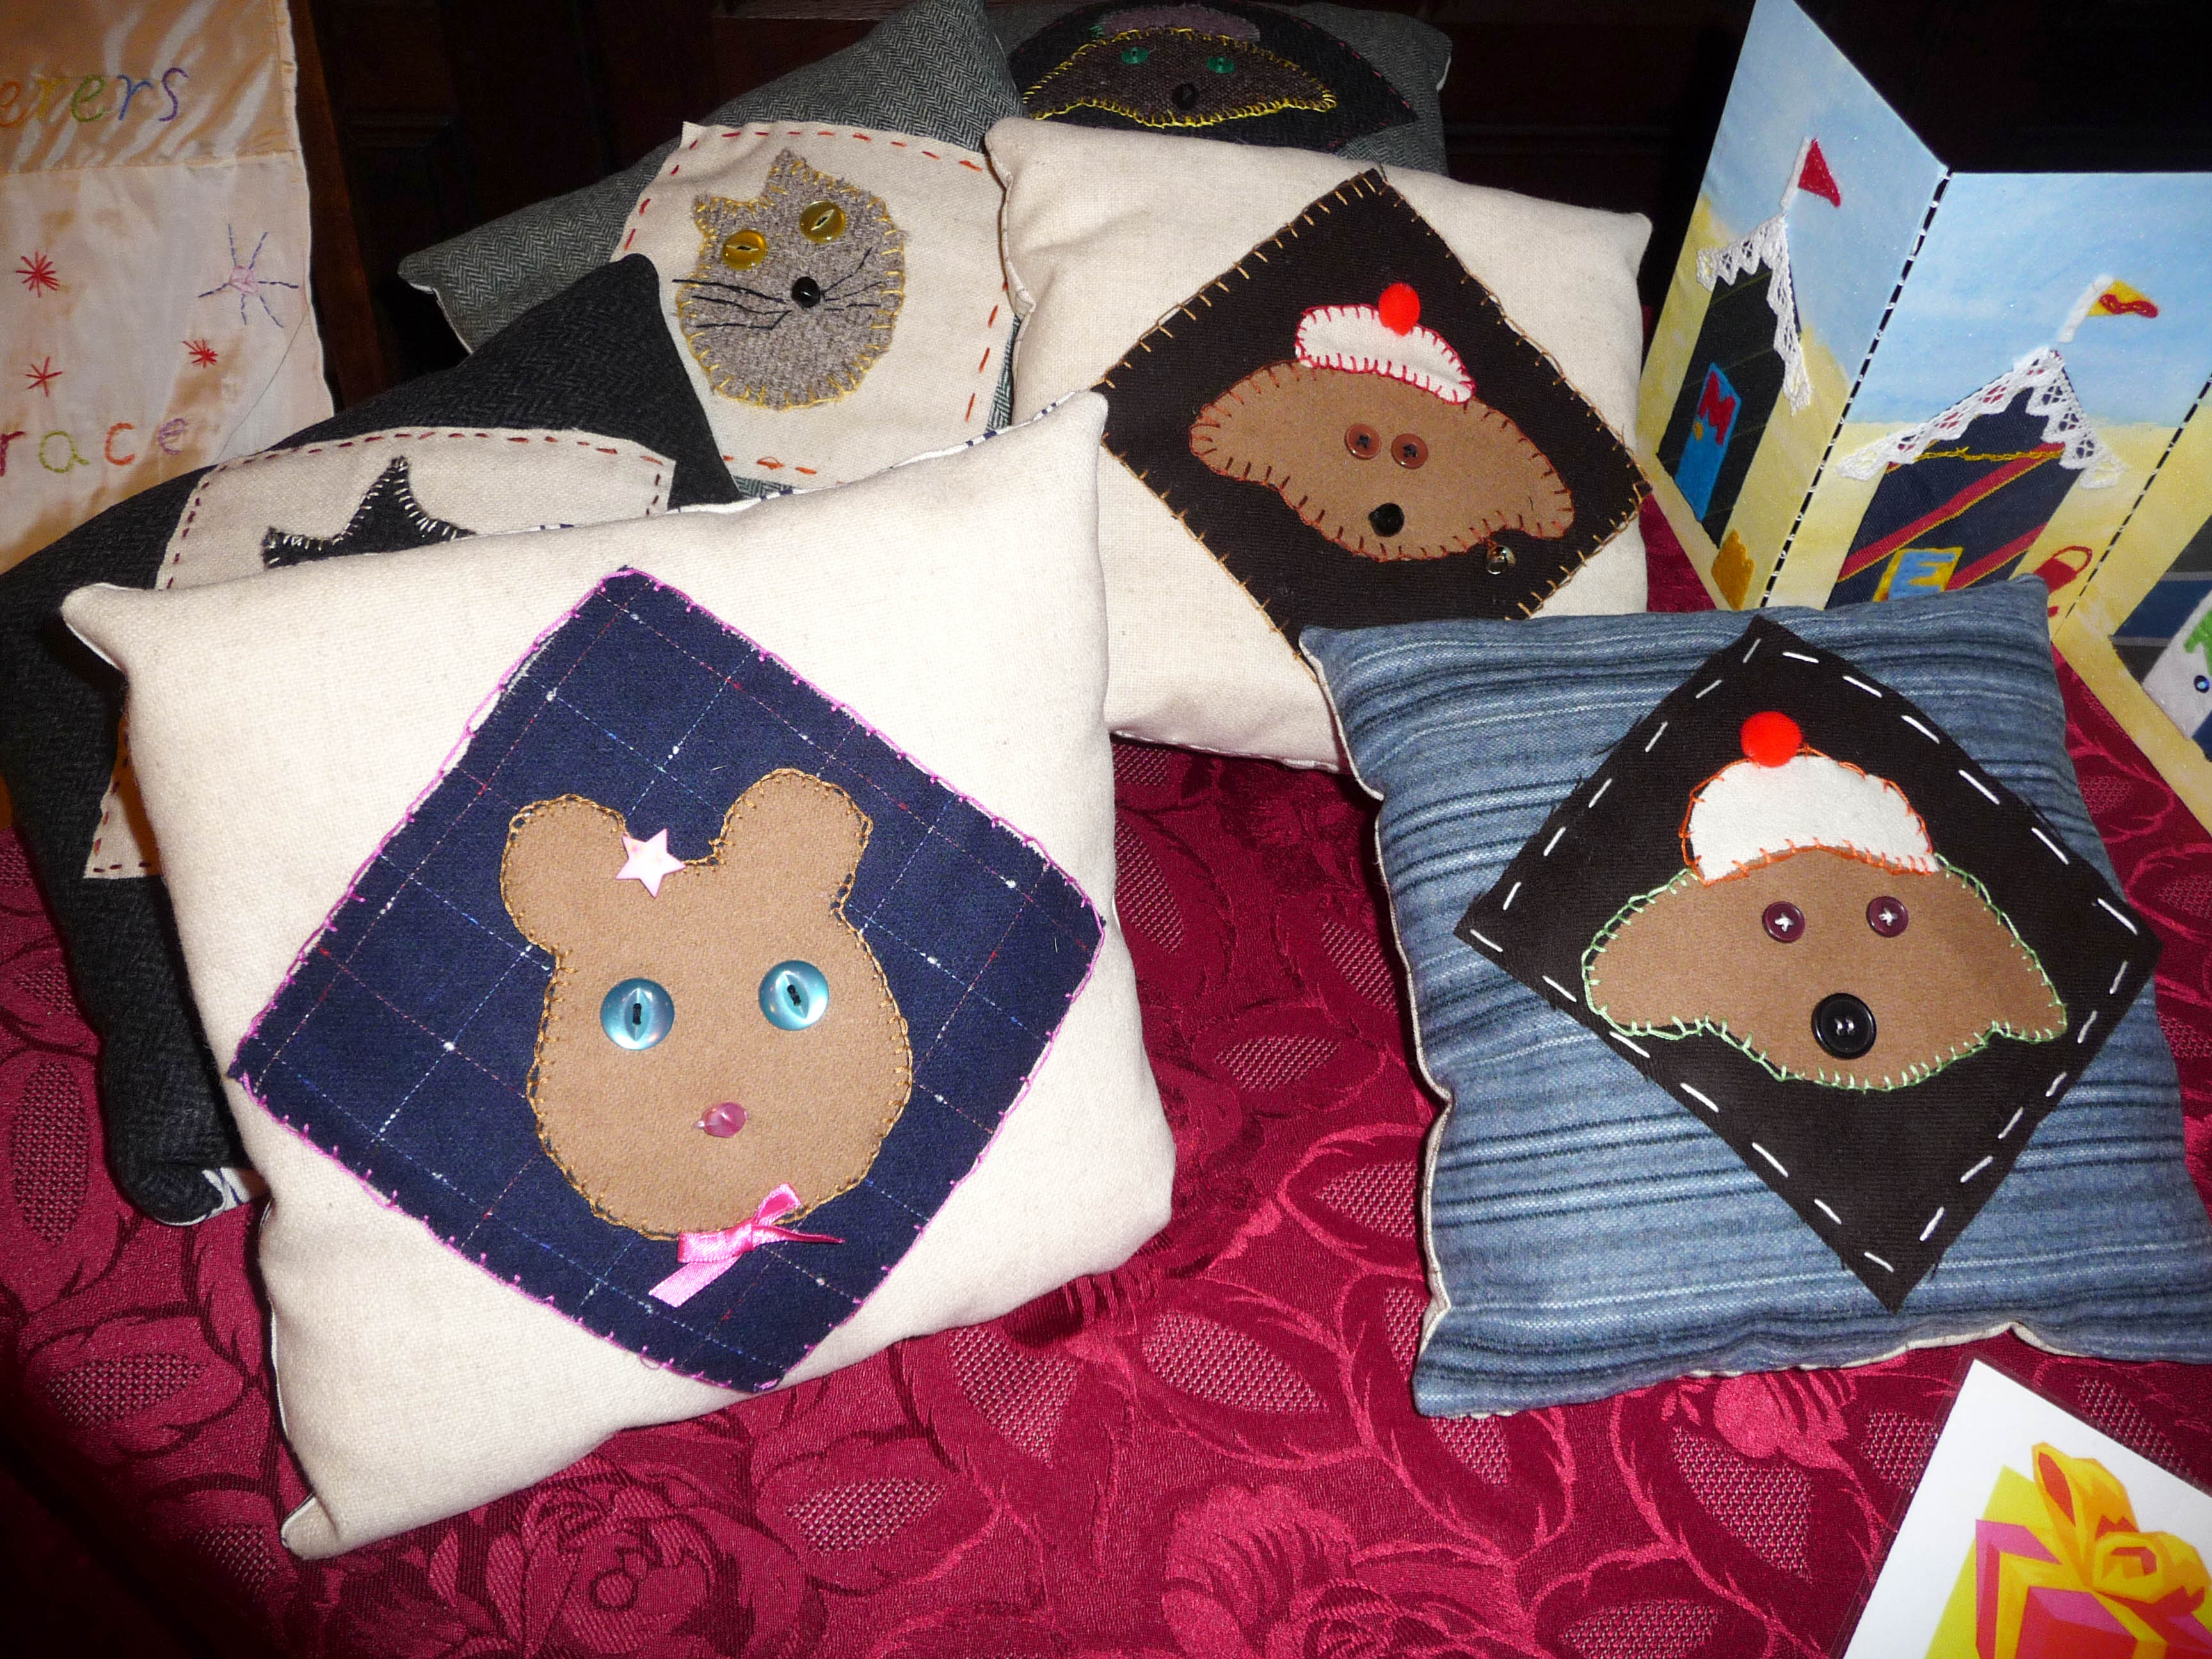 applique cushions made by Merseyside Young Embroiderers